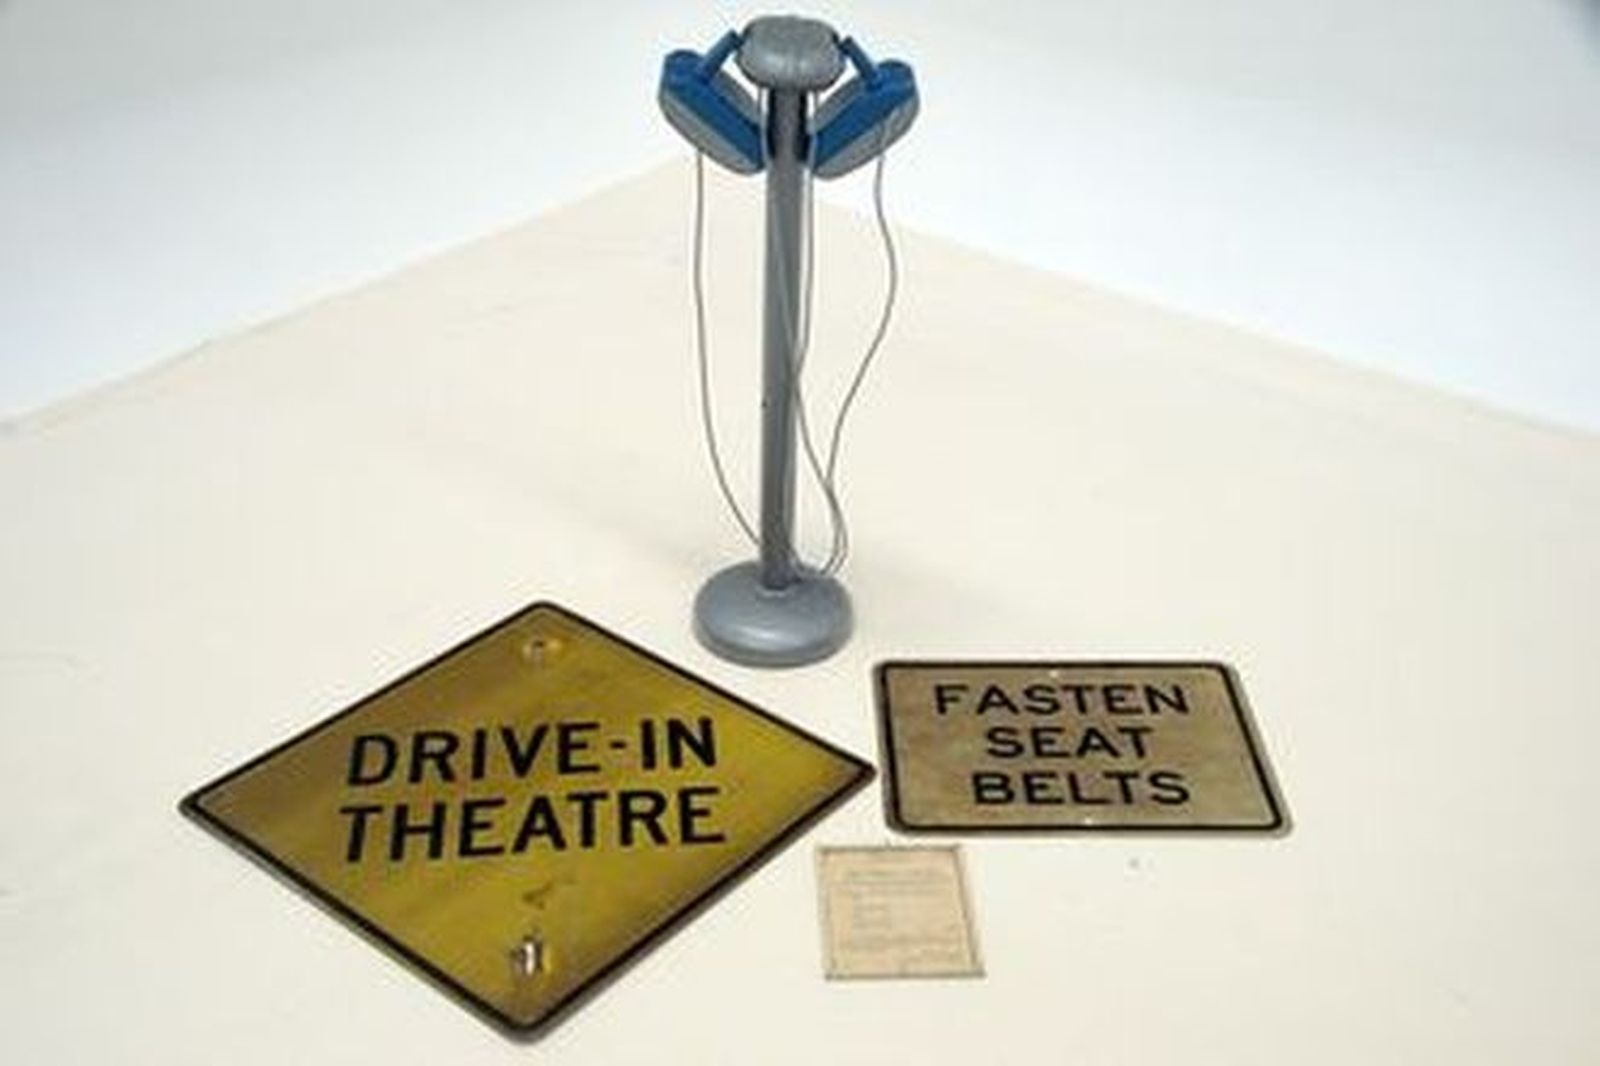 Drive In Collection - Speakers, Sign & Fasten Seat Belt Sign, Certificate from Ballarat Drive-In